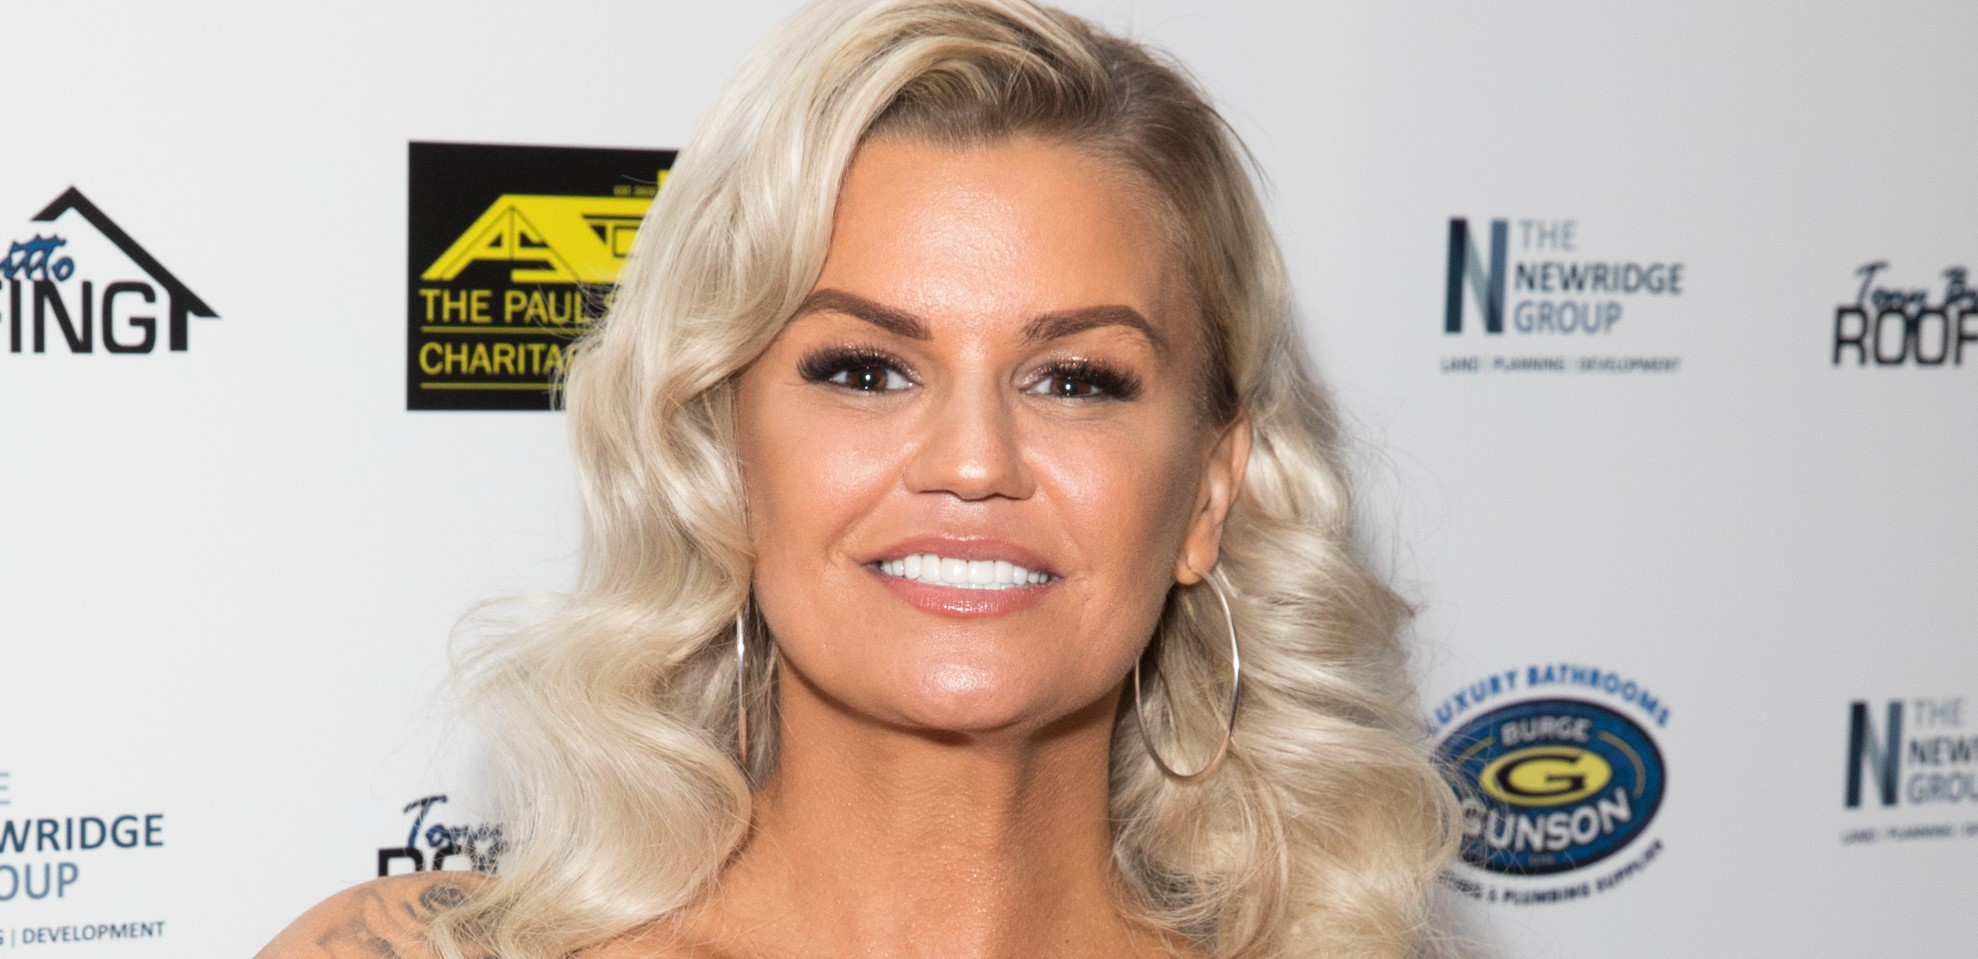 Kerry Katona reveals real reason behind her incredible weight loss